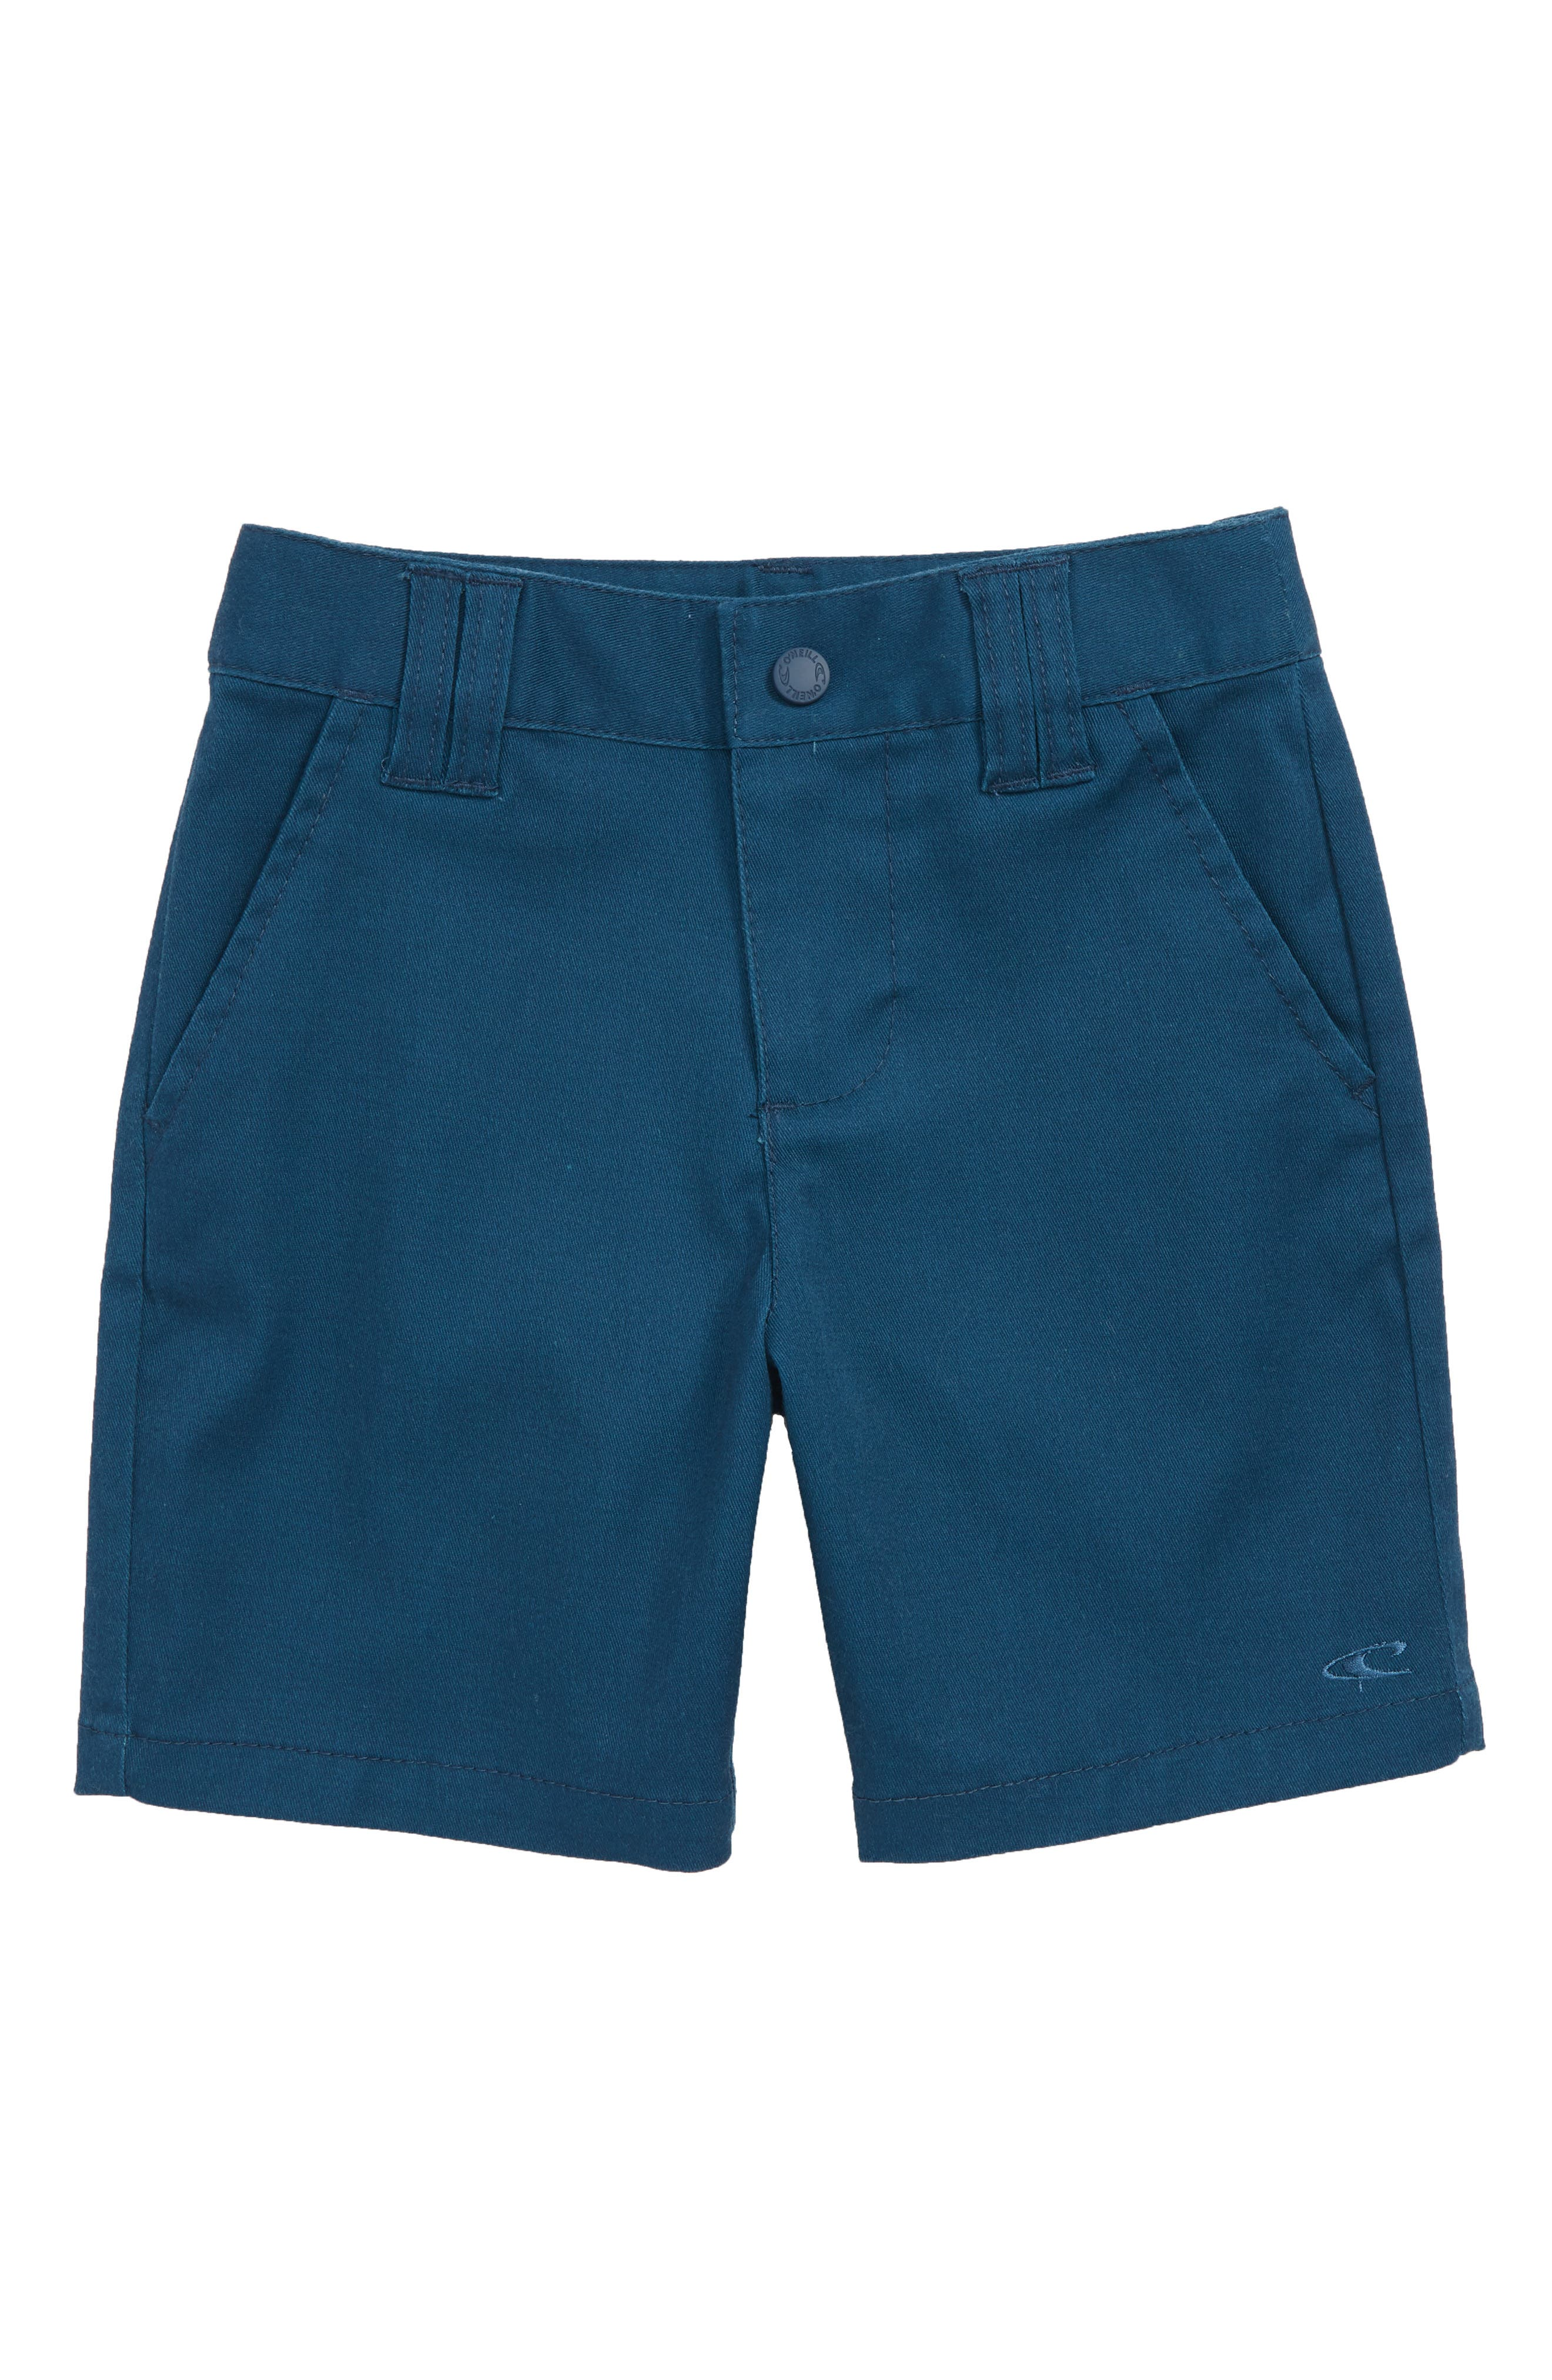 Contact Stretch Shorts,                         Main,                         color, DARK BLUE